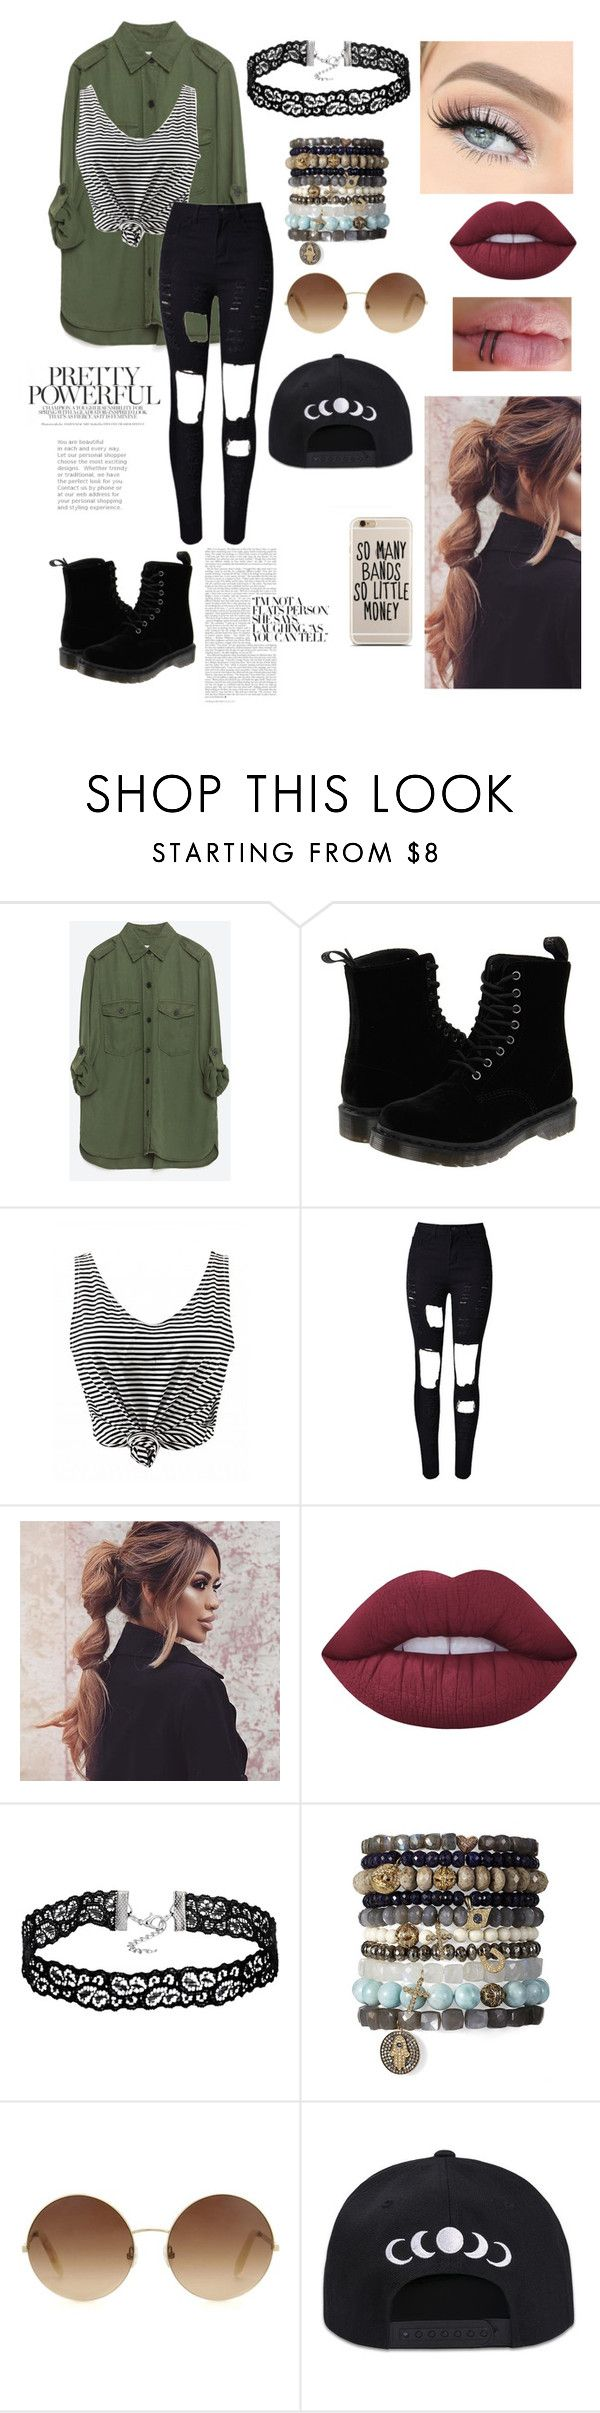 """Untitled #76"" by paigevjacobs on Polyvore featuring Zara, Dr. Martens, WithChic, Lime Crime and Victoria Beckham"